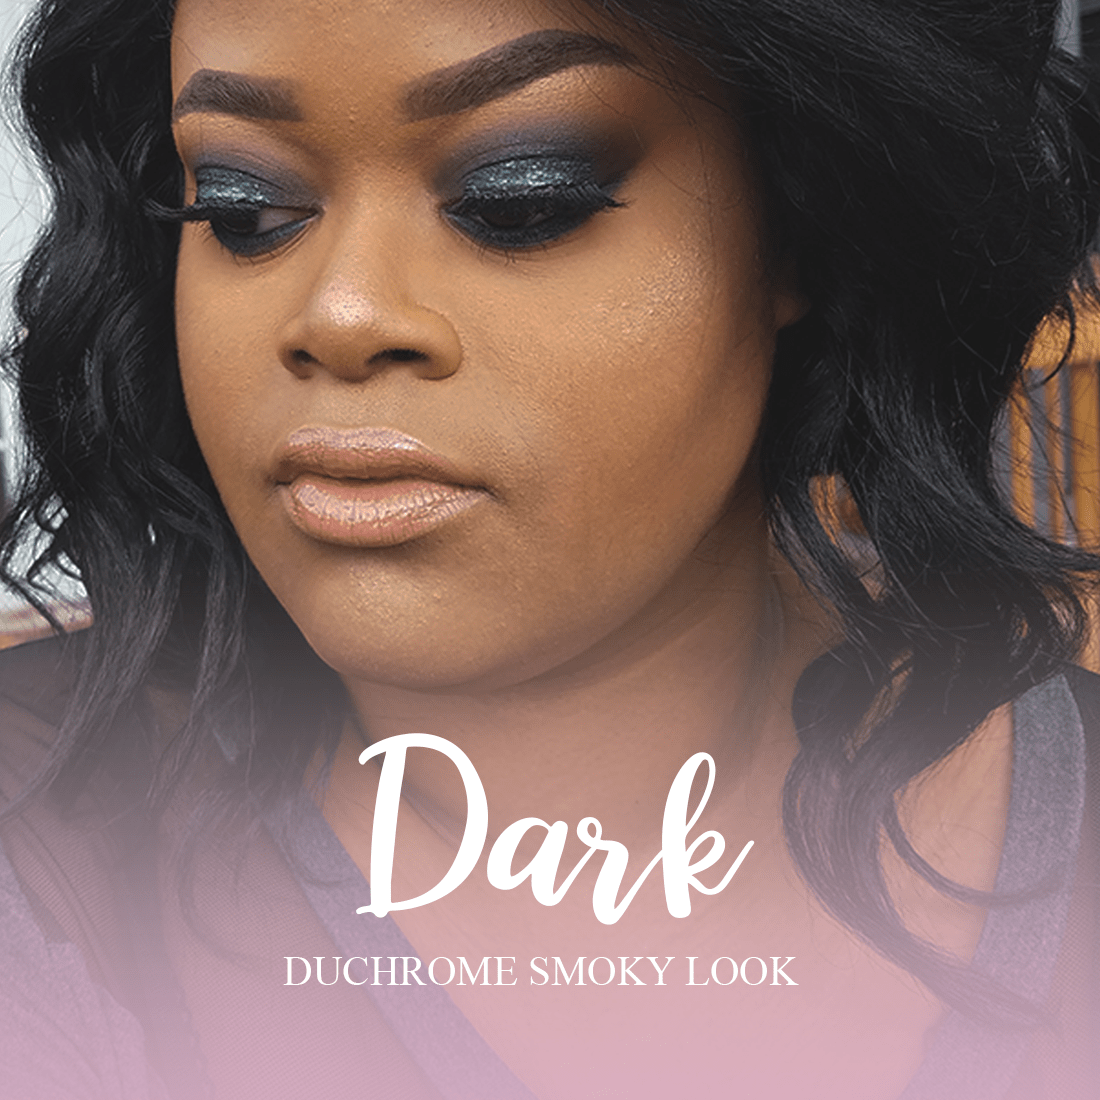 Dark Duochrome